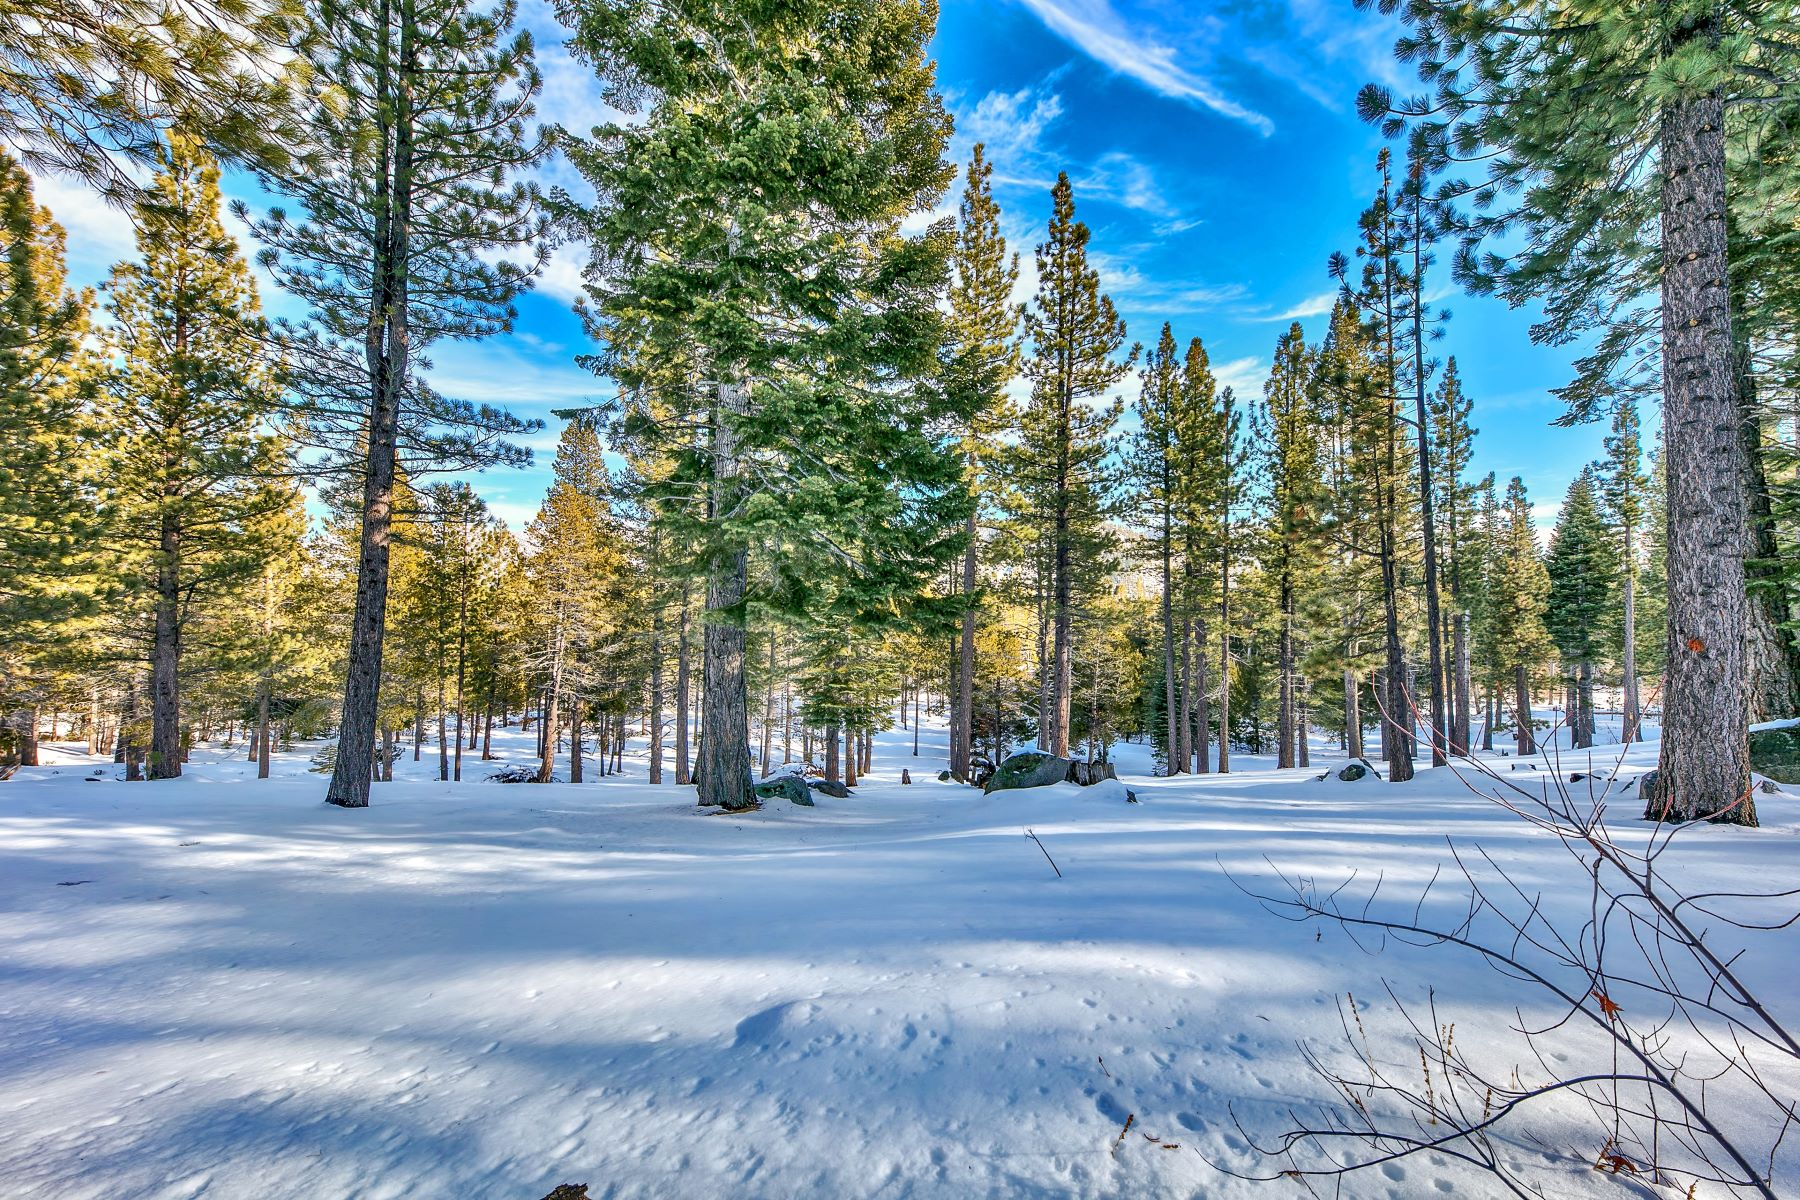 Additional photo for property listing at 2129 Oaxaco Street, South Lake Tahoe, CA 2129 Oaxaco Street South Lake Tahoe, California 96150 Estados Unidos